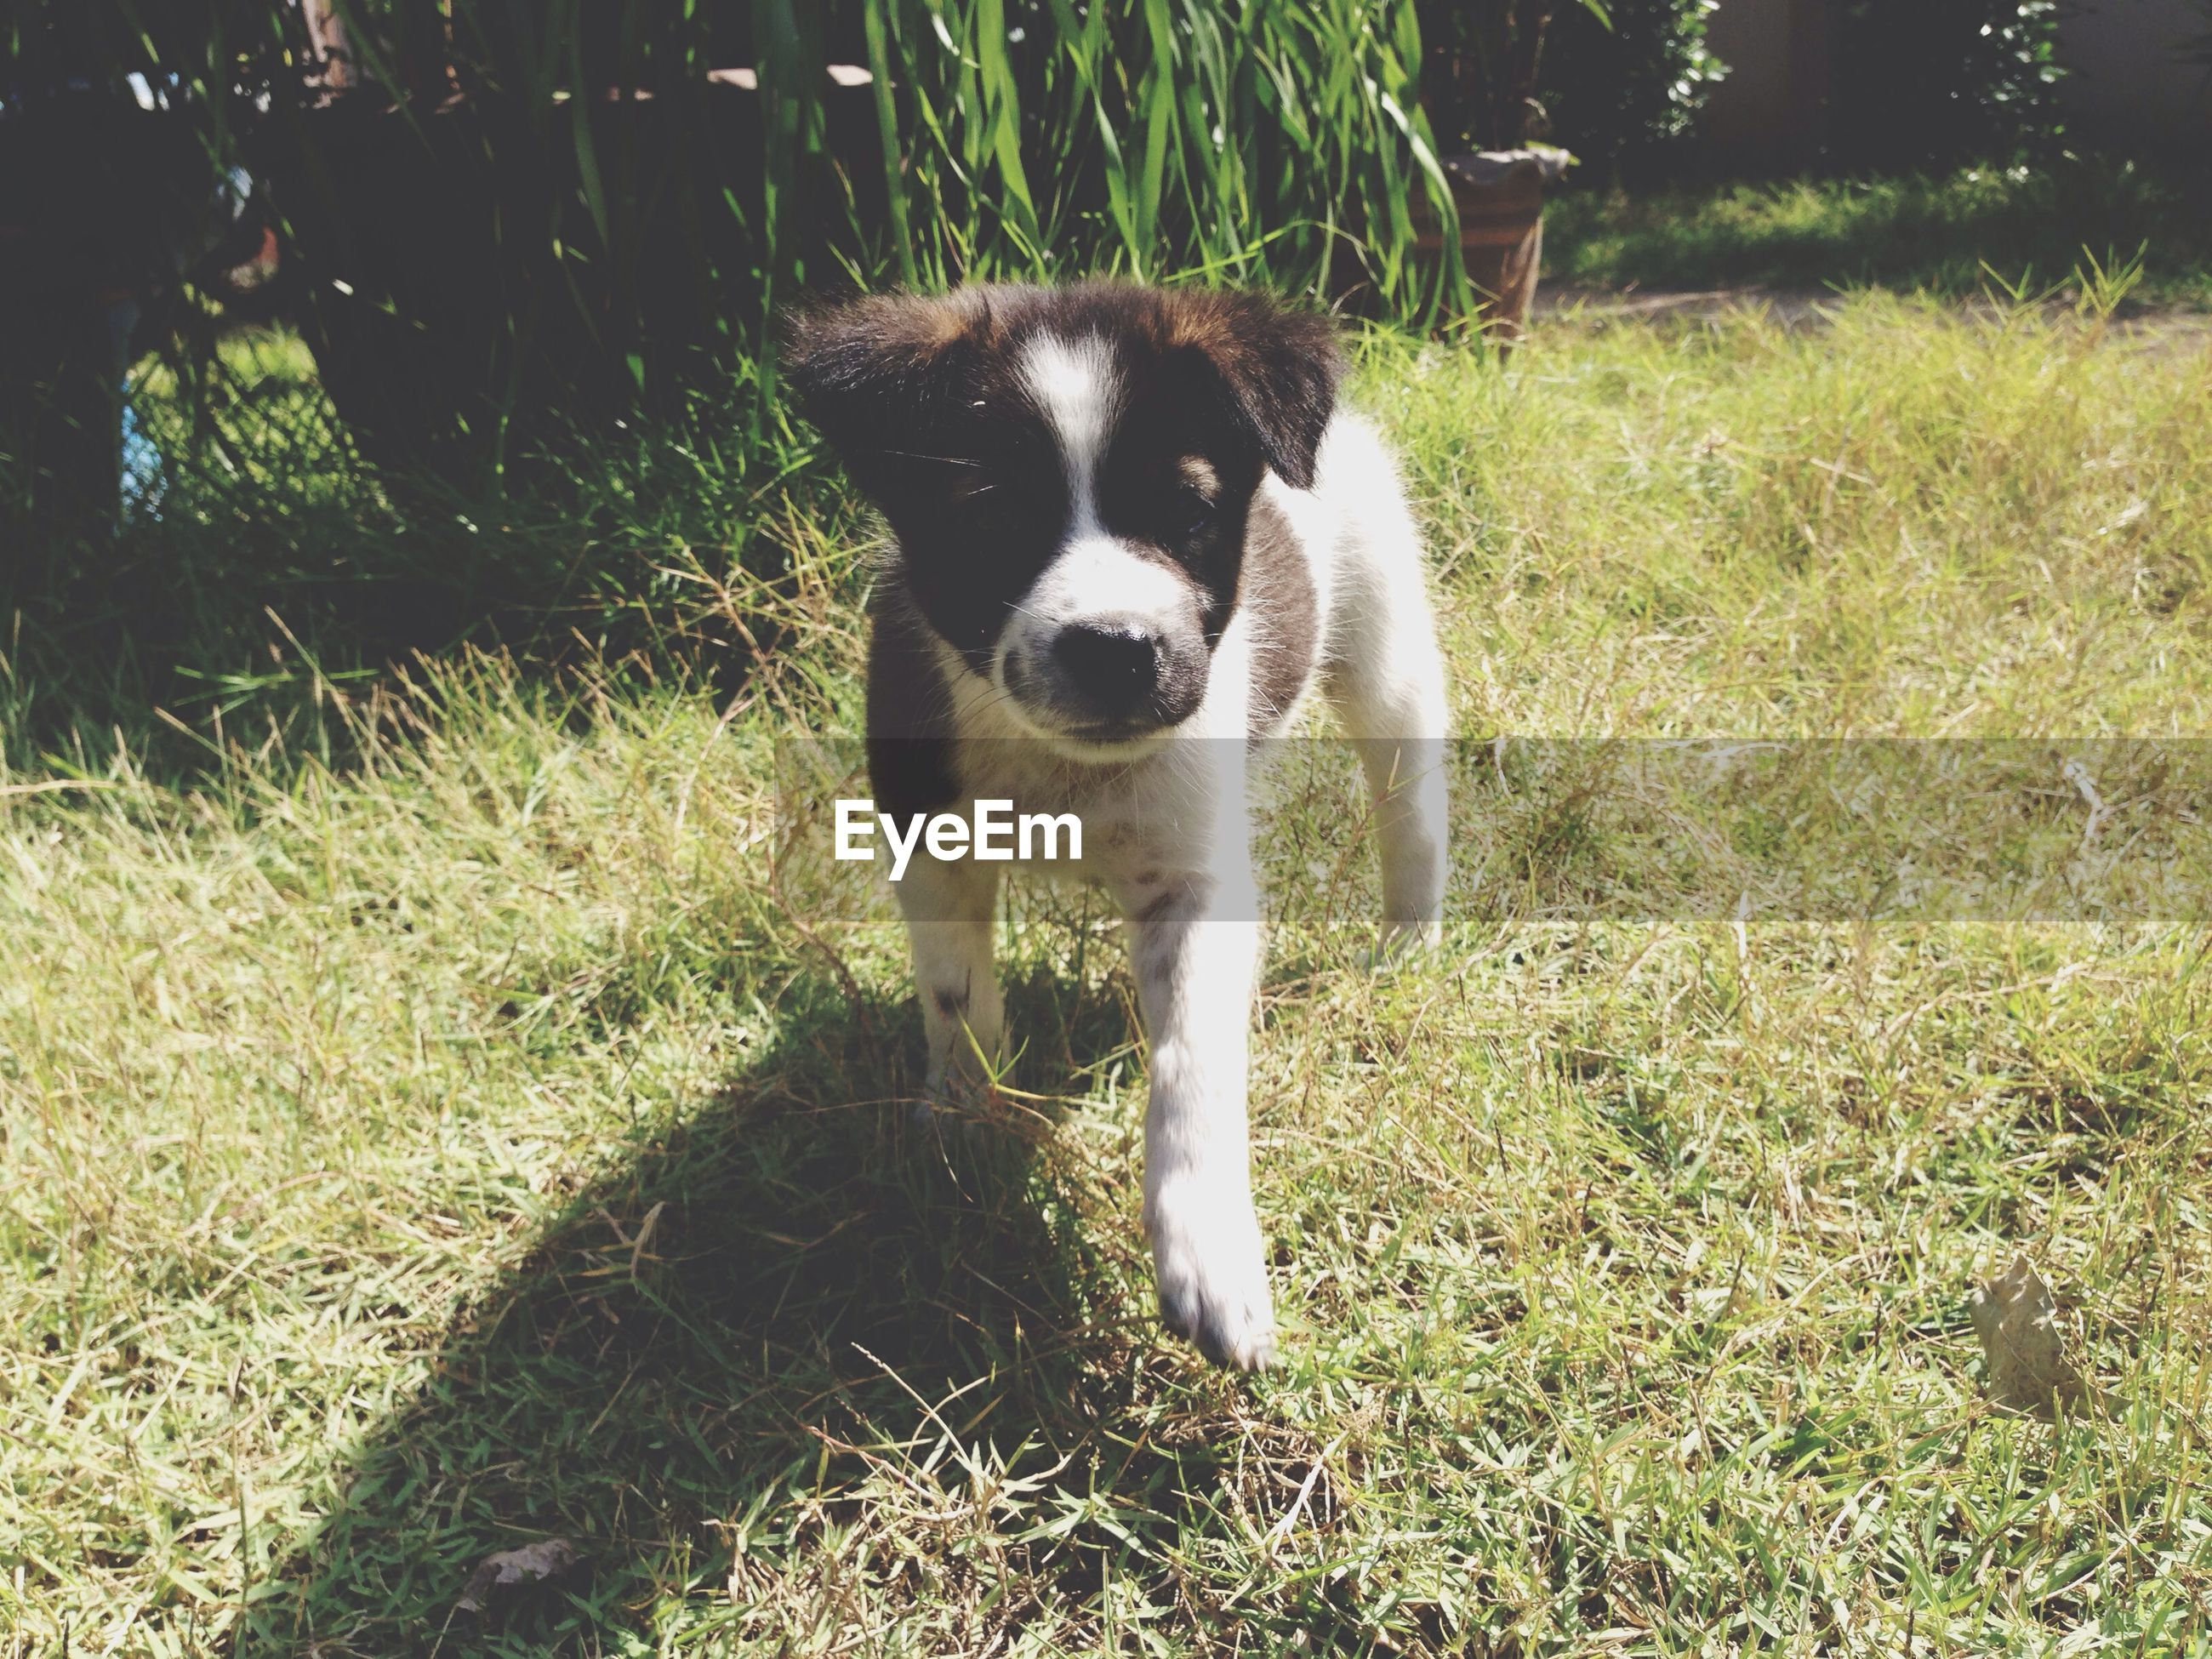 one animal, pets, dog, domestic animals, grass, animal themes, mammal, field, grassy, portrait, standing, sunlight, looking at camera, sitting, full length, nature, day, growth, outdoors, high angle view